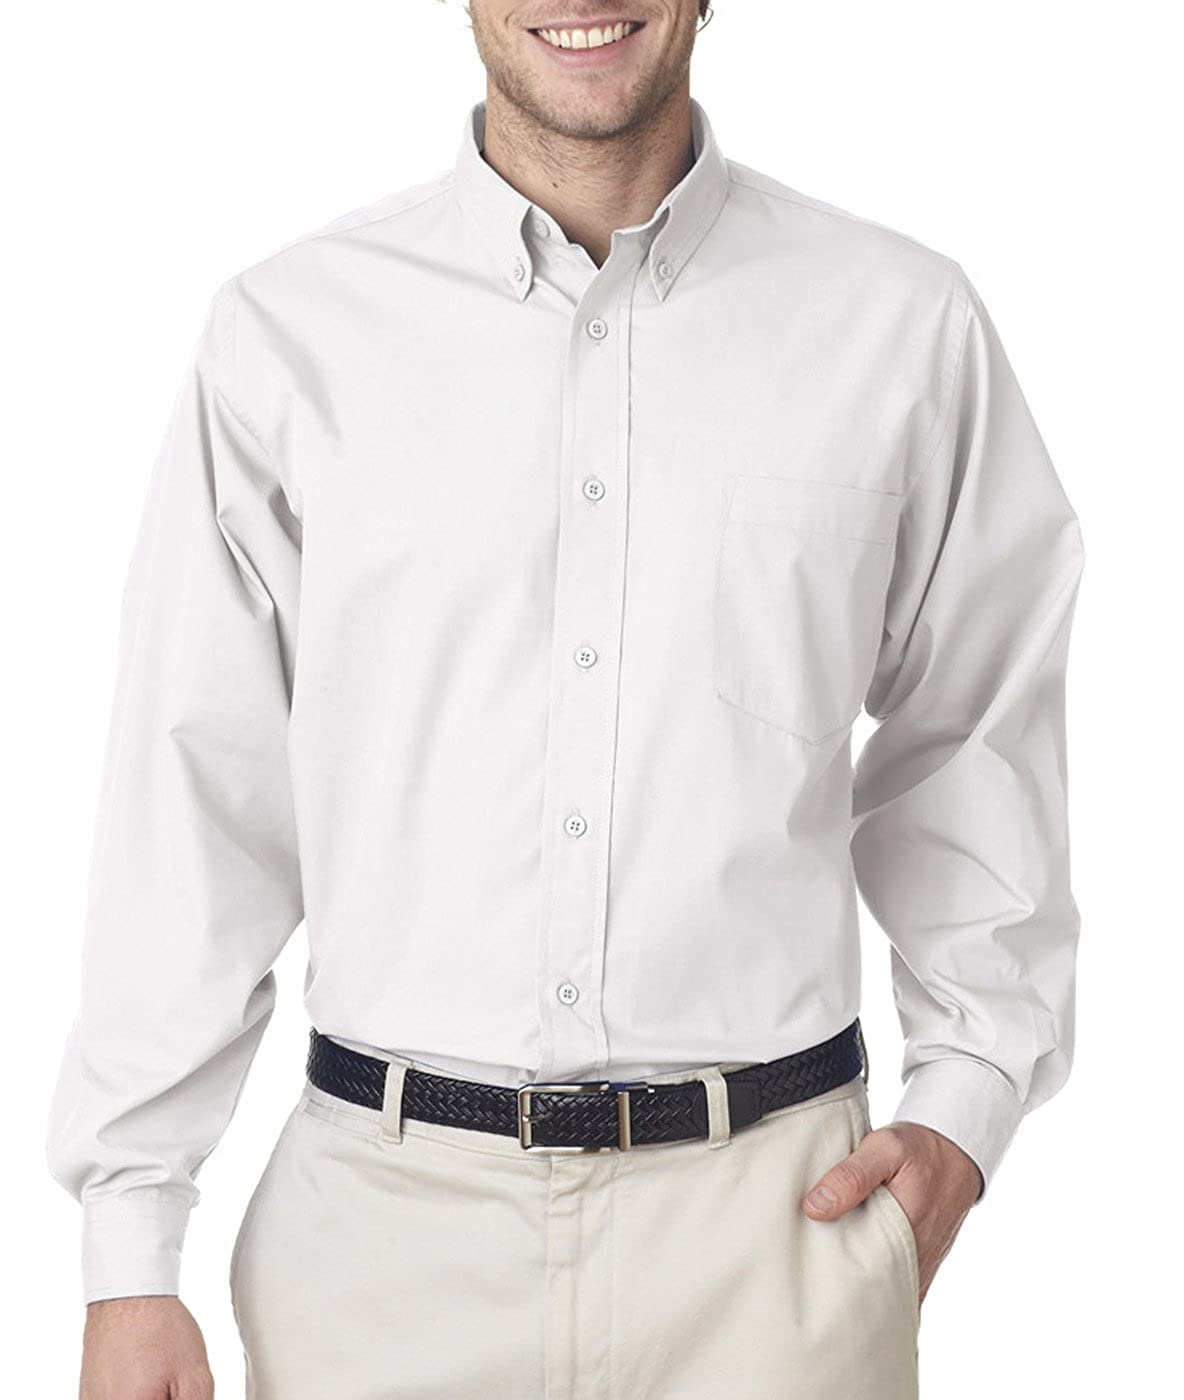 UltraClub 8355 Mens Easy-Care Broadcloth Button Down Shirt